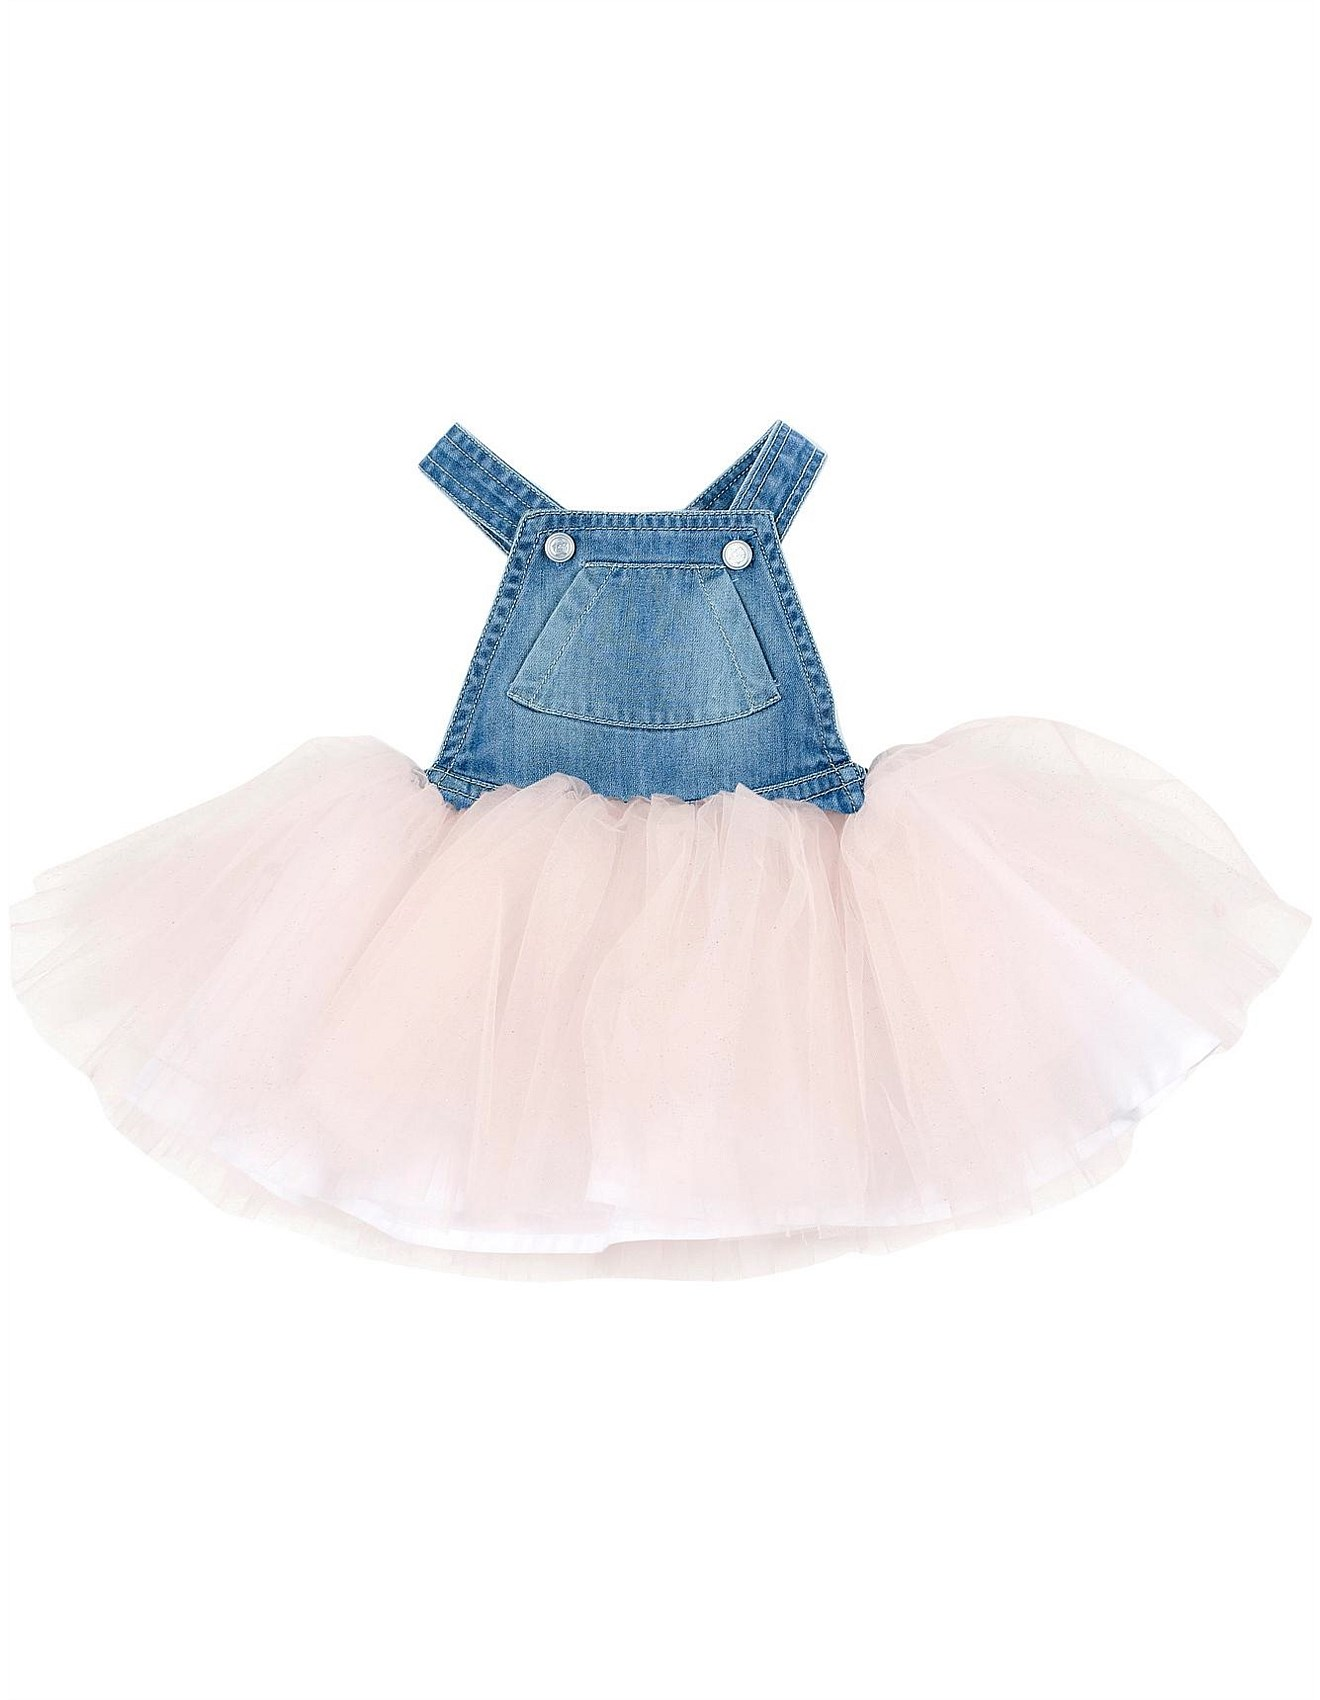 8fca9a8c73 Tweet Denim Overall Dress W Tulle (Girls 3-7 Years)